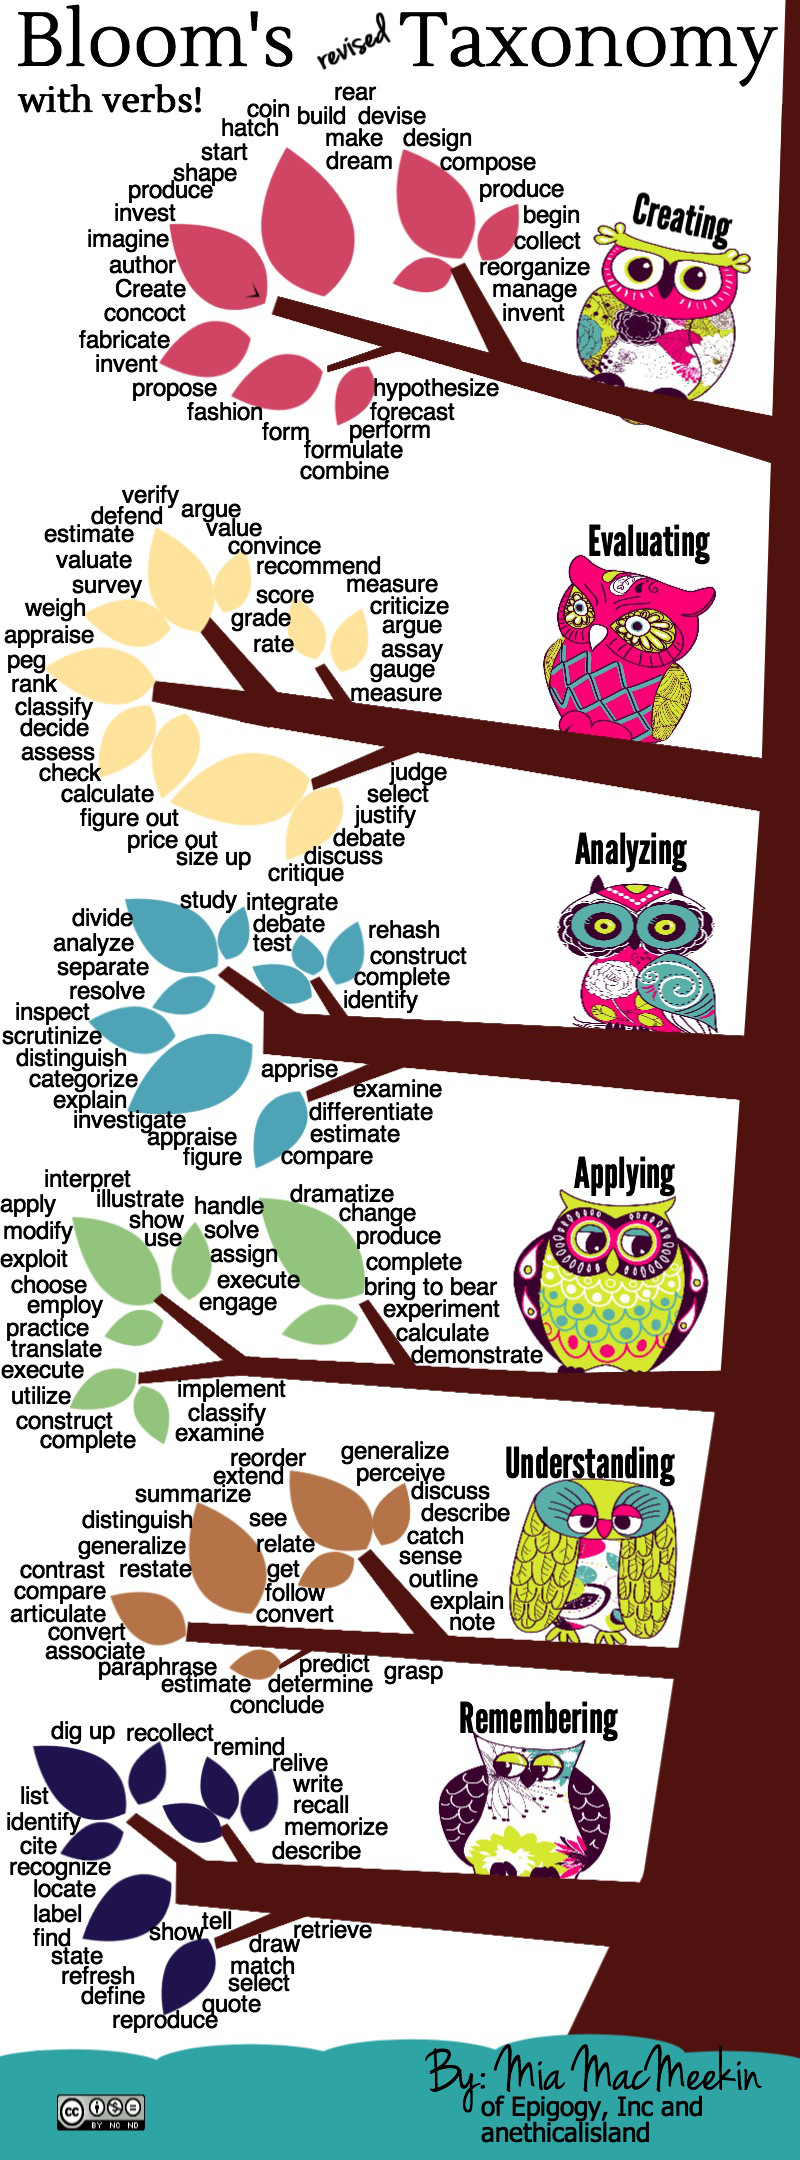 A New Wonderful Bloom's Taxonomy Visual for Teachers ~ Educational Technology and Mobile Learning